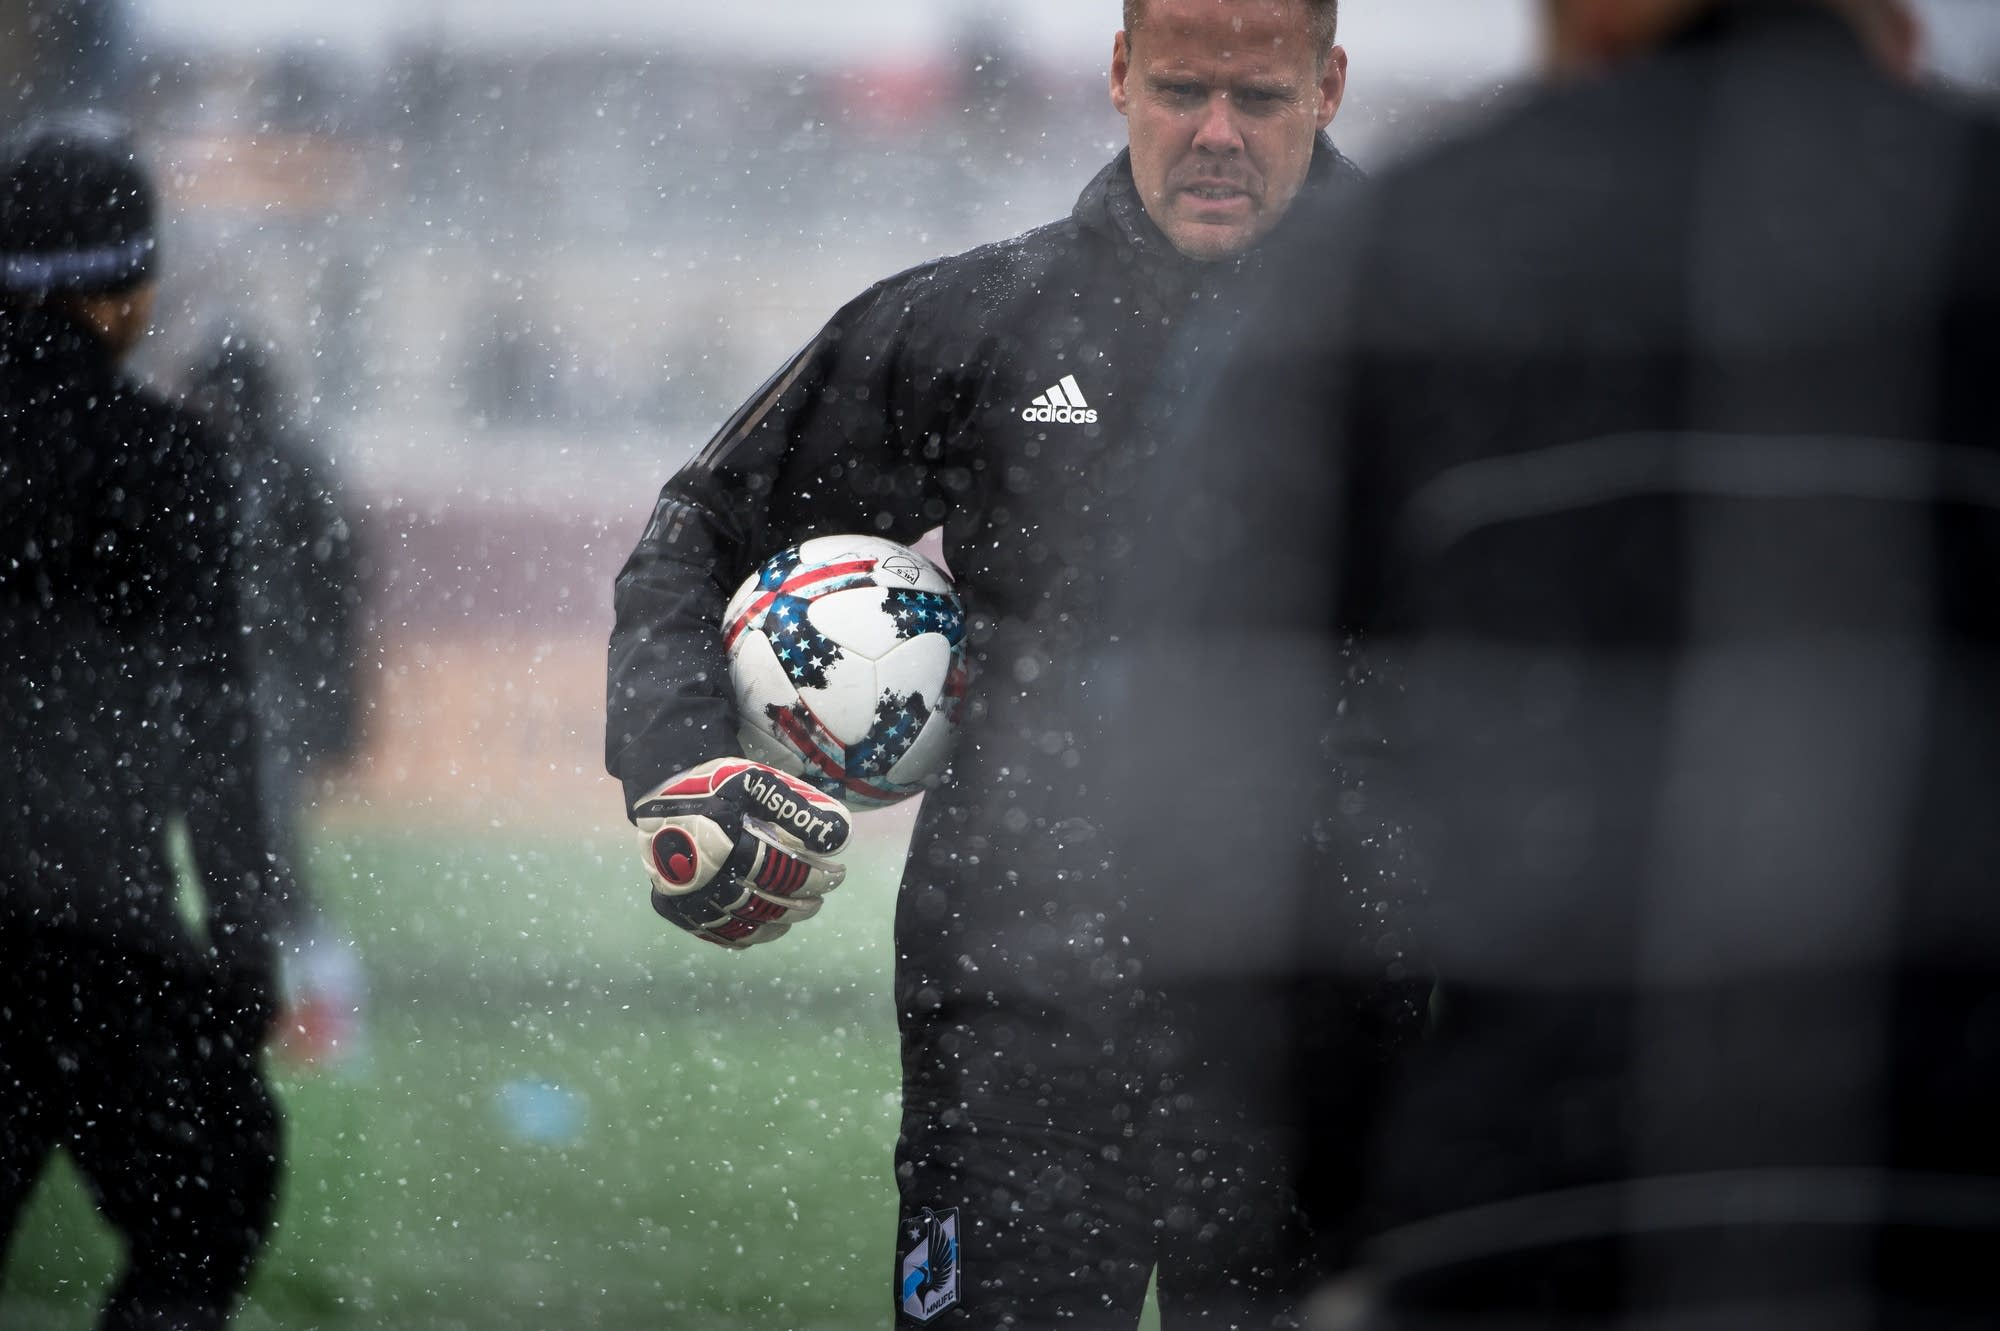 Minnesota United goal keeper Patrick McLain during team warm-ups.